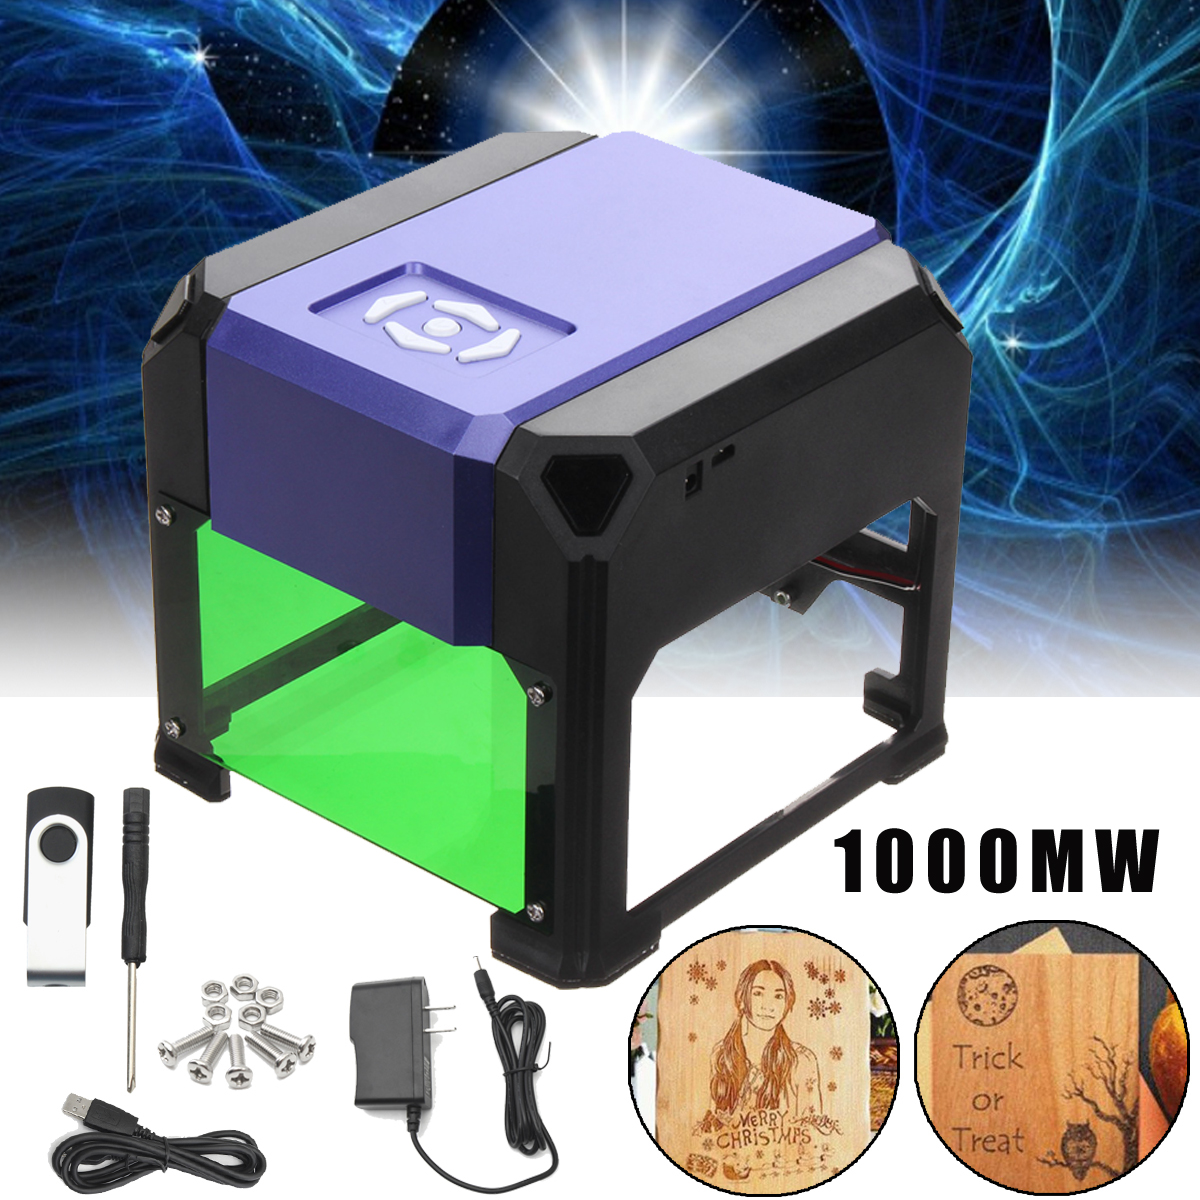 1000mW Laser Engraver DIY Engraving Machine Cutter DIY Logo Mark Printer CNC Laser Cutter Carving 80x80mm For WIN/7/8/10 for XP 1000mw high speed mini laser cutter usb laser engraver cnc router automatic diy engraving machine off line operation glasses